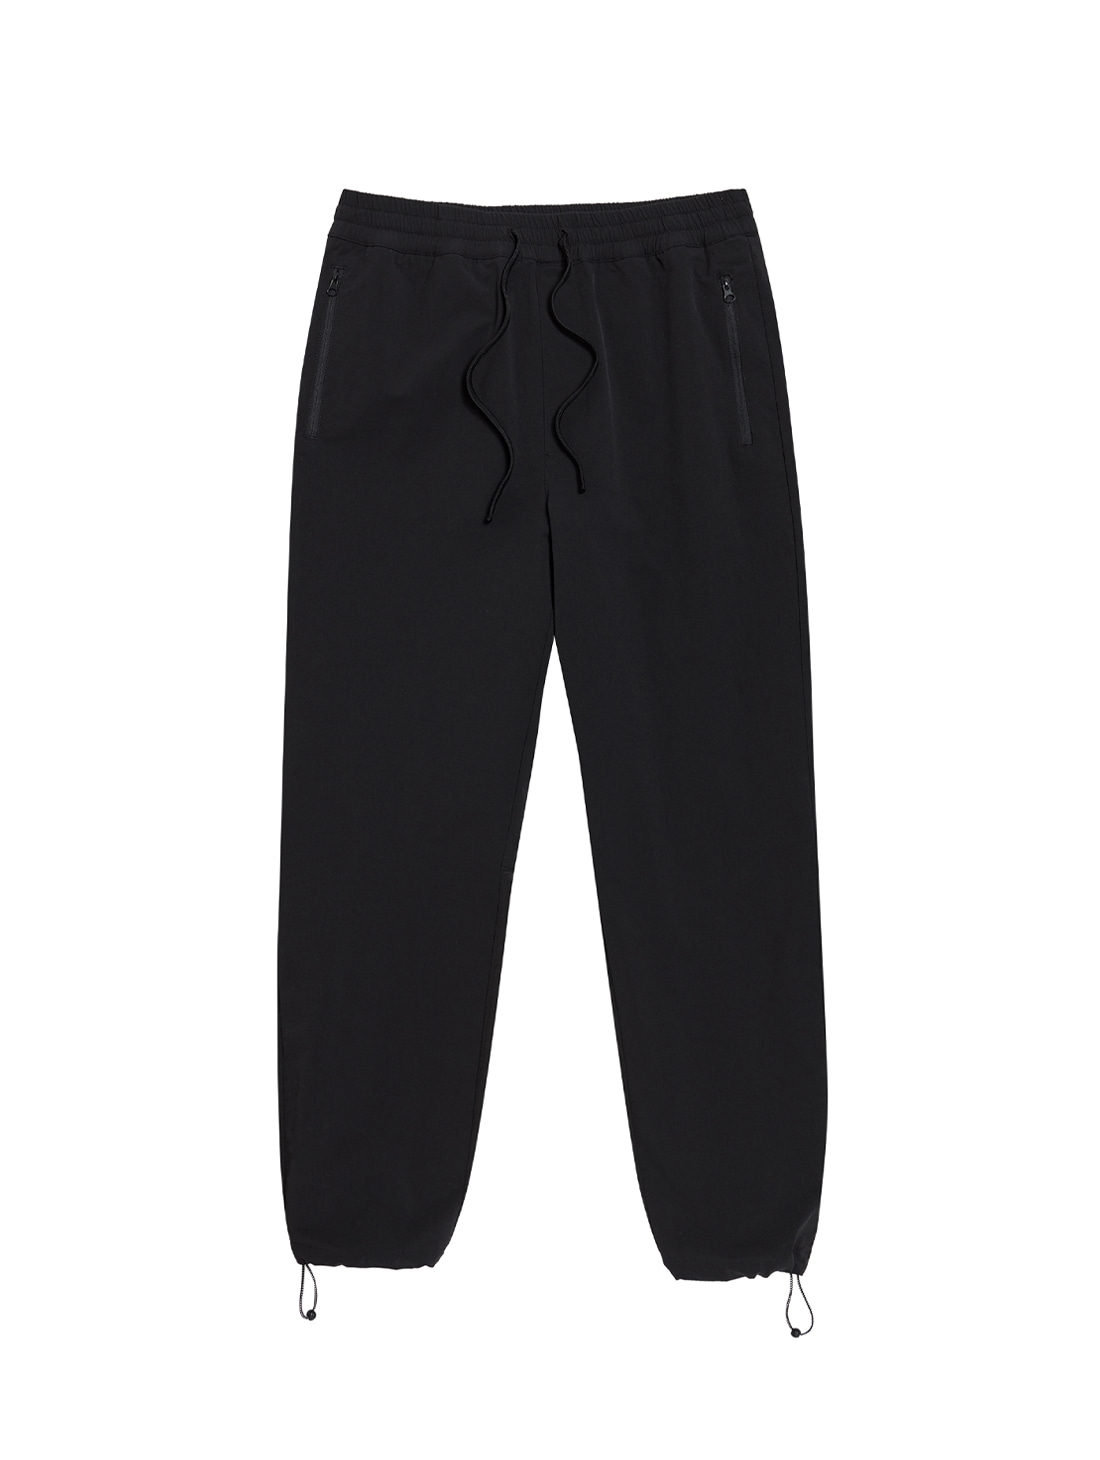 GOALSTUDIO DRAW STRING PANTS - BLACK